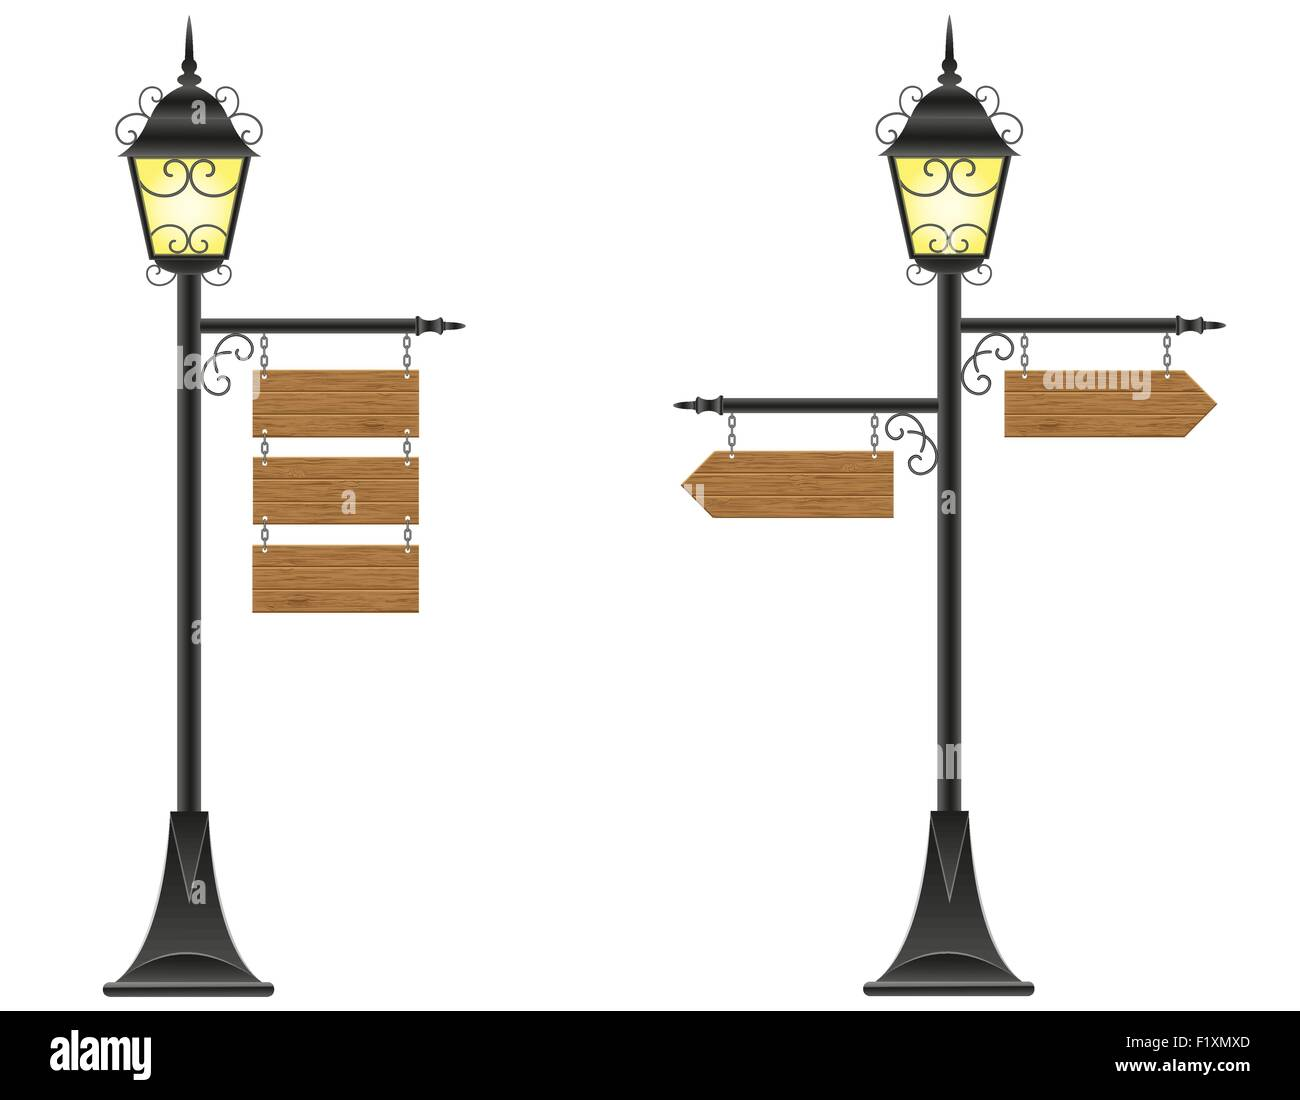 wooden boards signs hanging  on a streetlight vector illustration isolated on white background Stock Vector